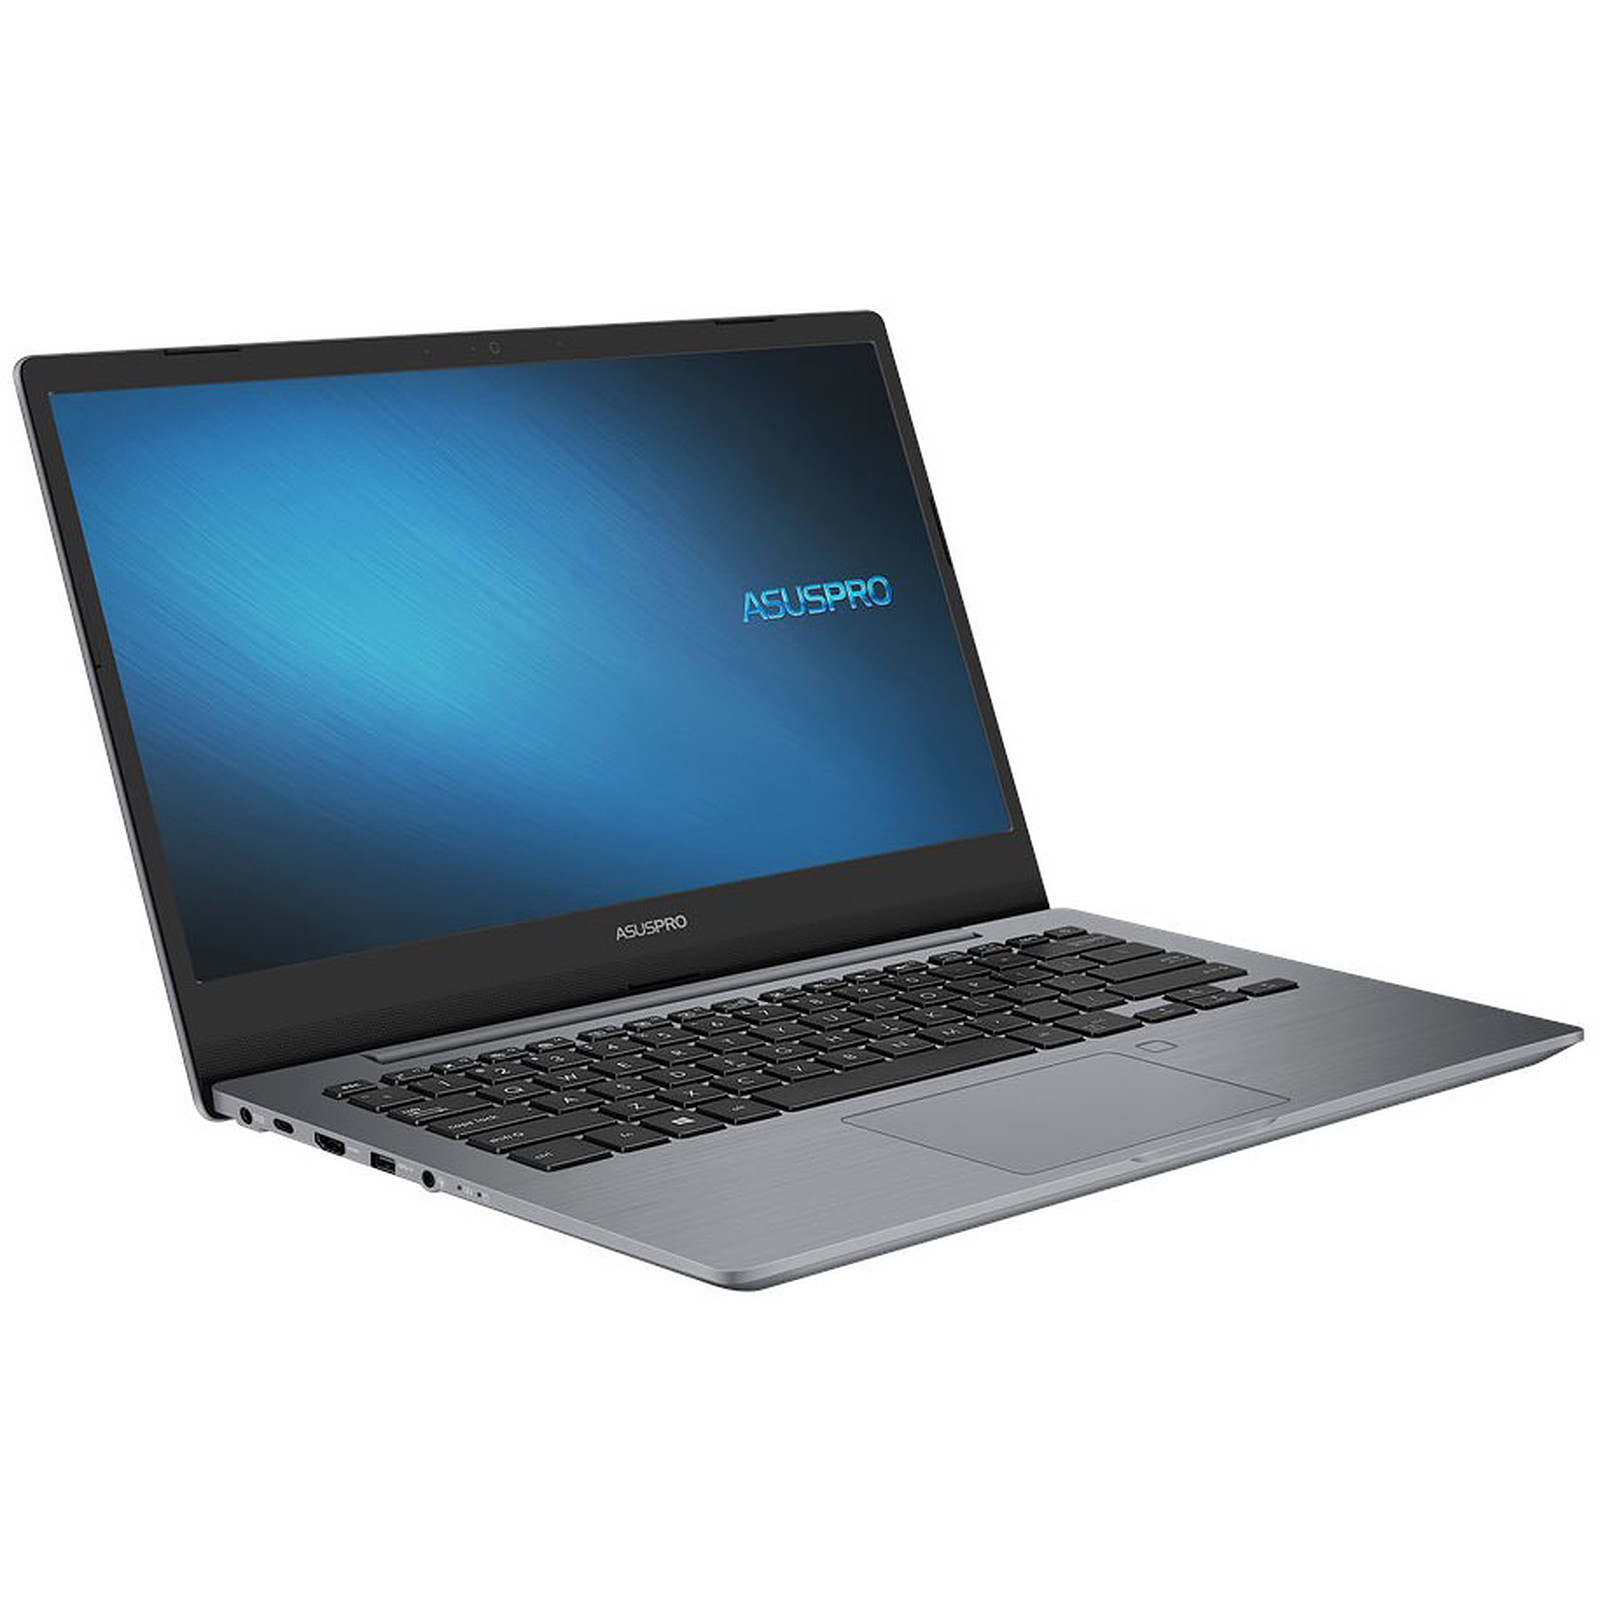 Ordinateur ultra portable Asus P5440 Intel i5, SSD 512 Go, 8Go DDR4, 14 pouces LED, W10 pro 64bits, informatique Reunion 974, Futur Réunion informatique